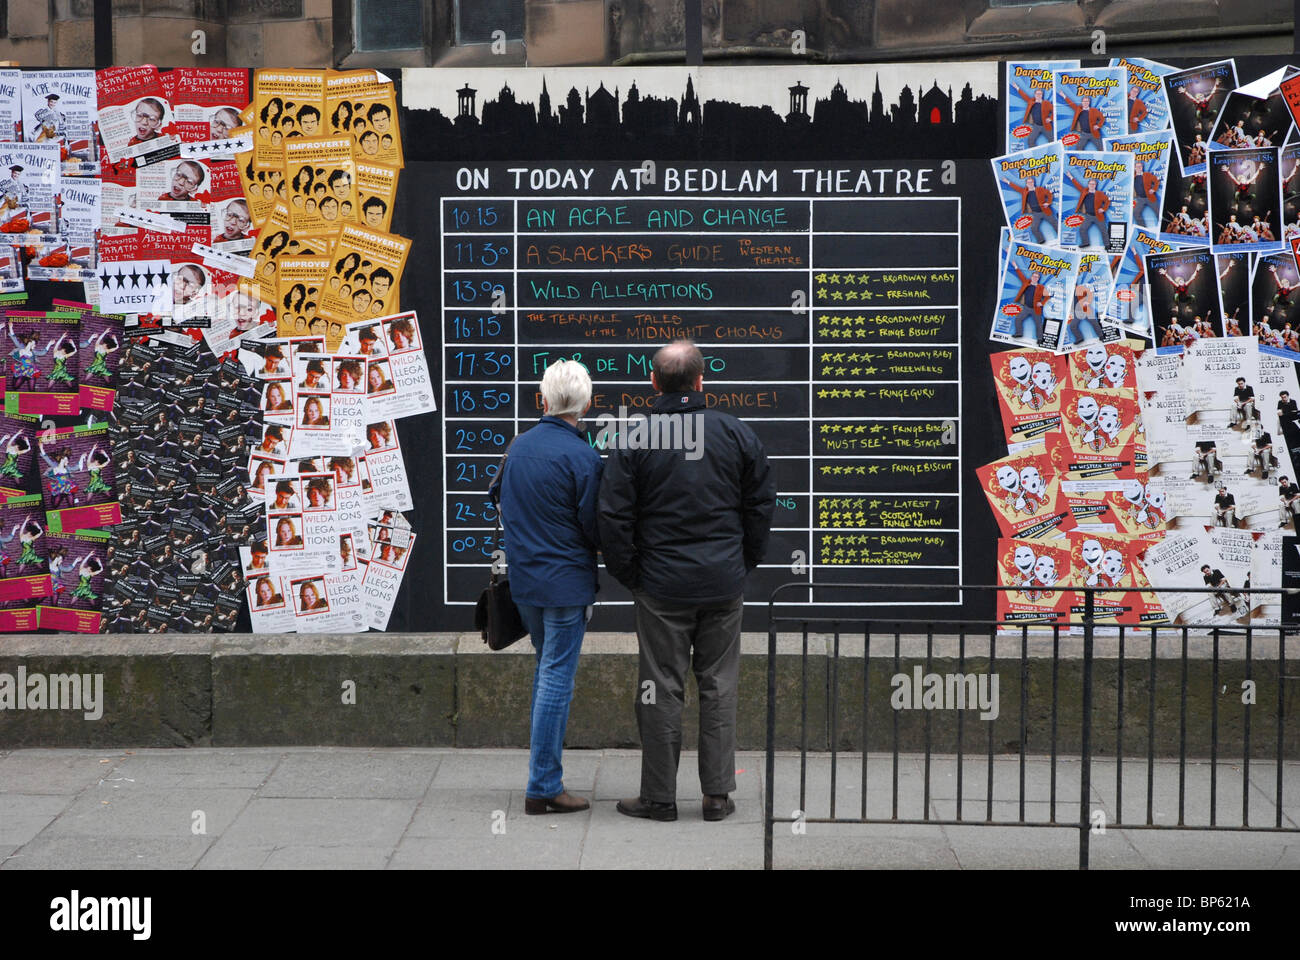 A couple check out the blackboard outside the Bedlam Theatre during the annual Edinburgh Fringe Festival - Stock Image